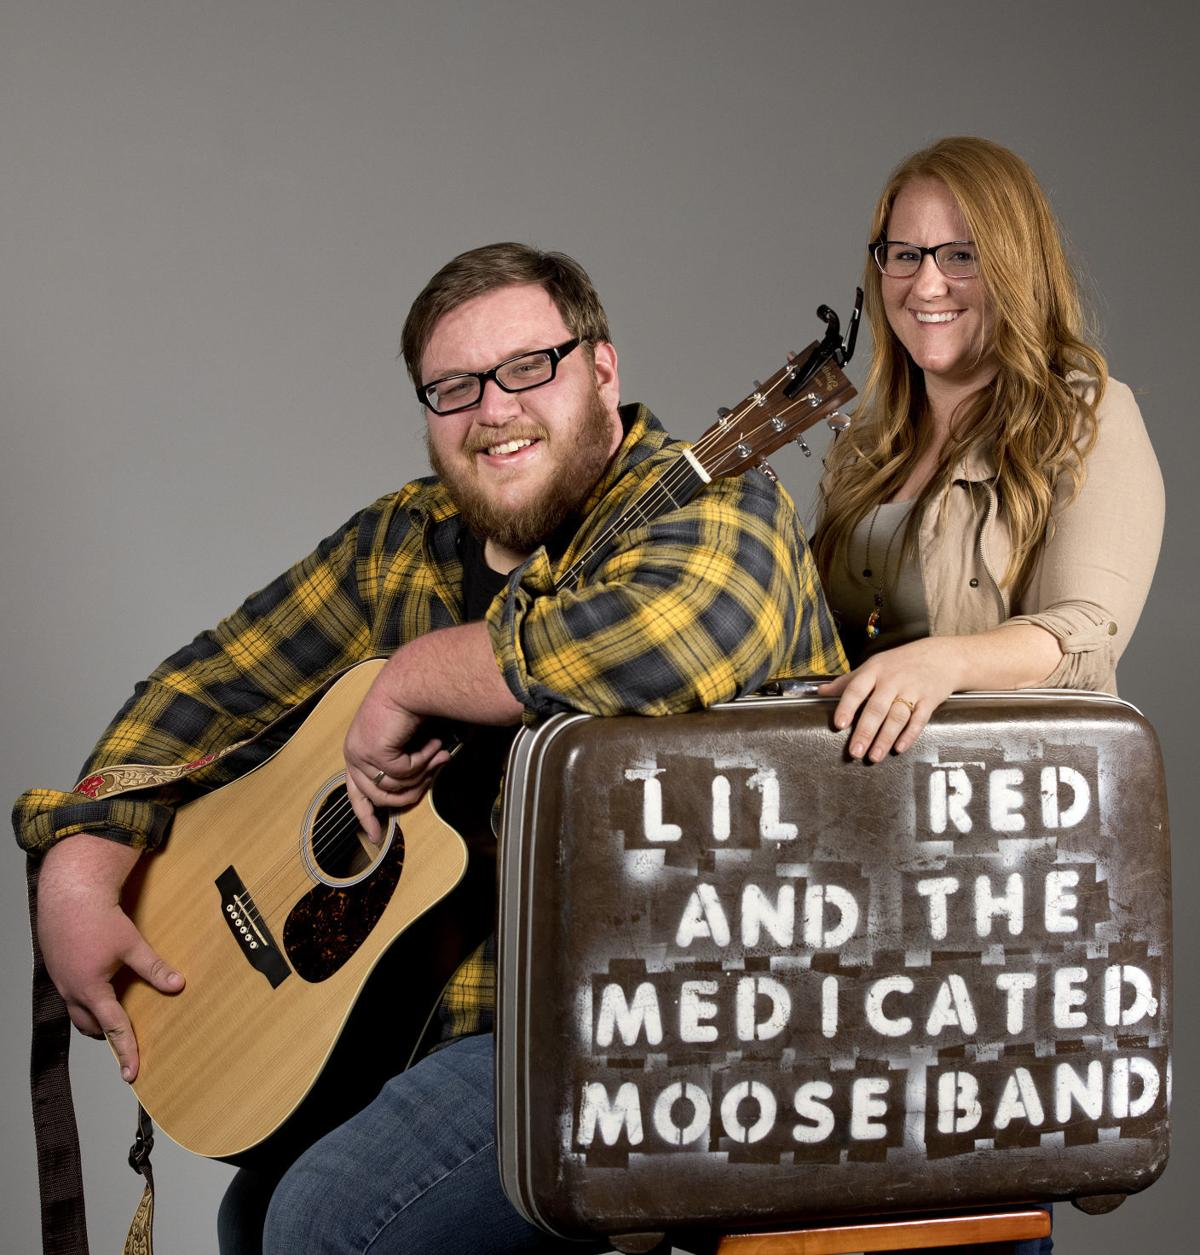 Lil Red and the Medicated Moose Band